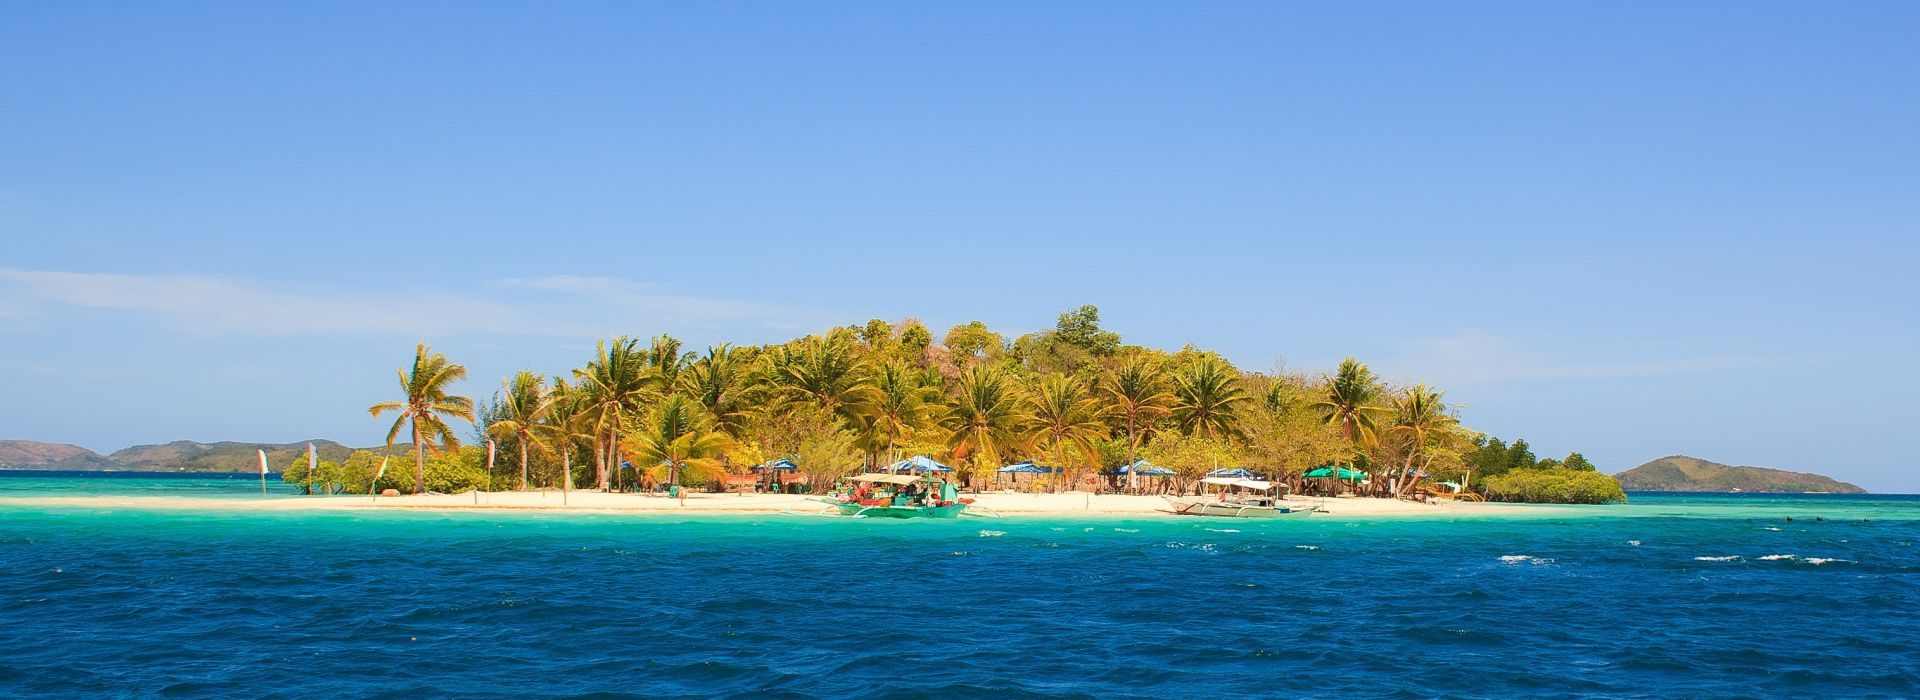 Sightseeing, attractions, culture and history Tours in Bohol